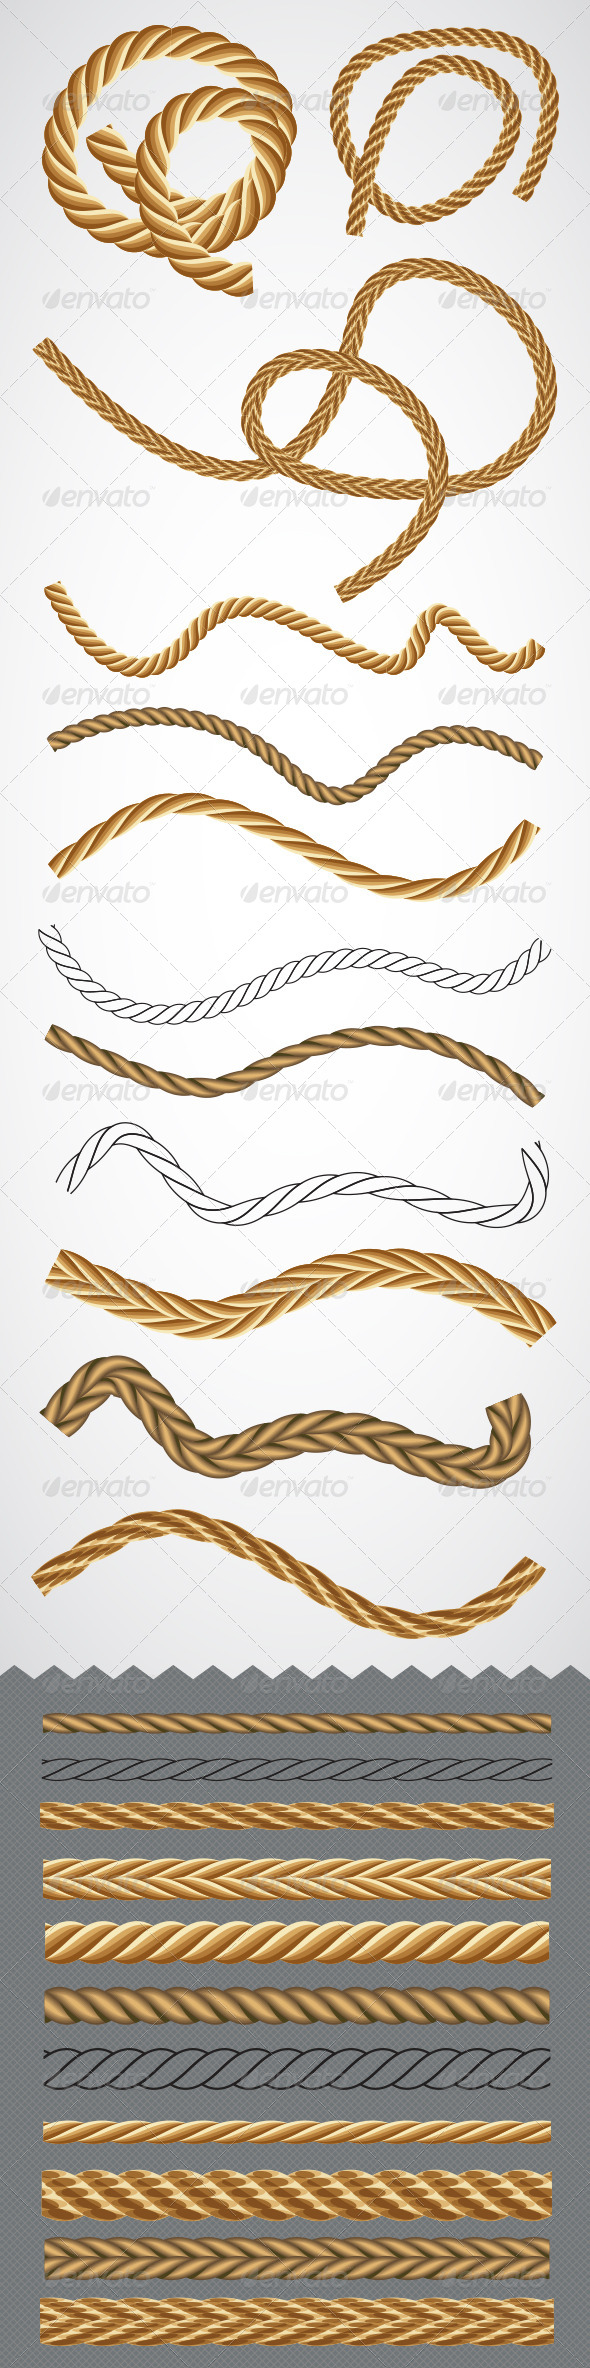 GraphicRiver Vector Rope Graphic Styles 7864893